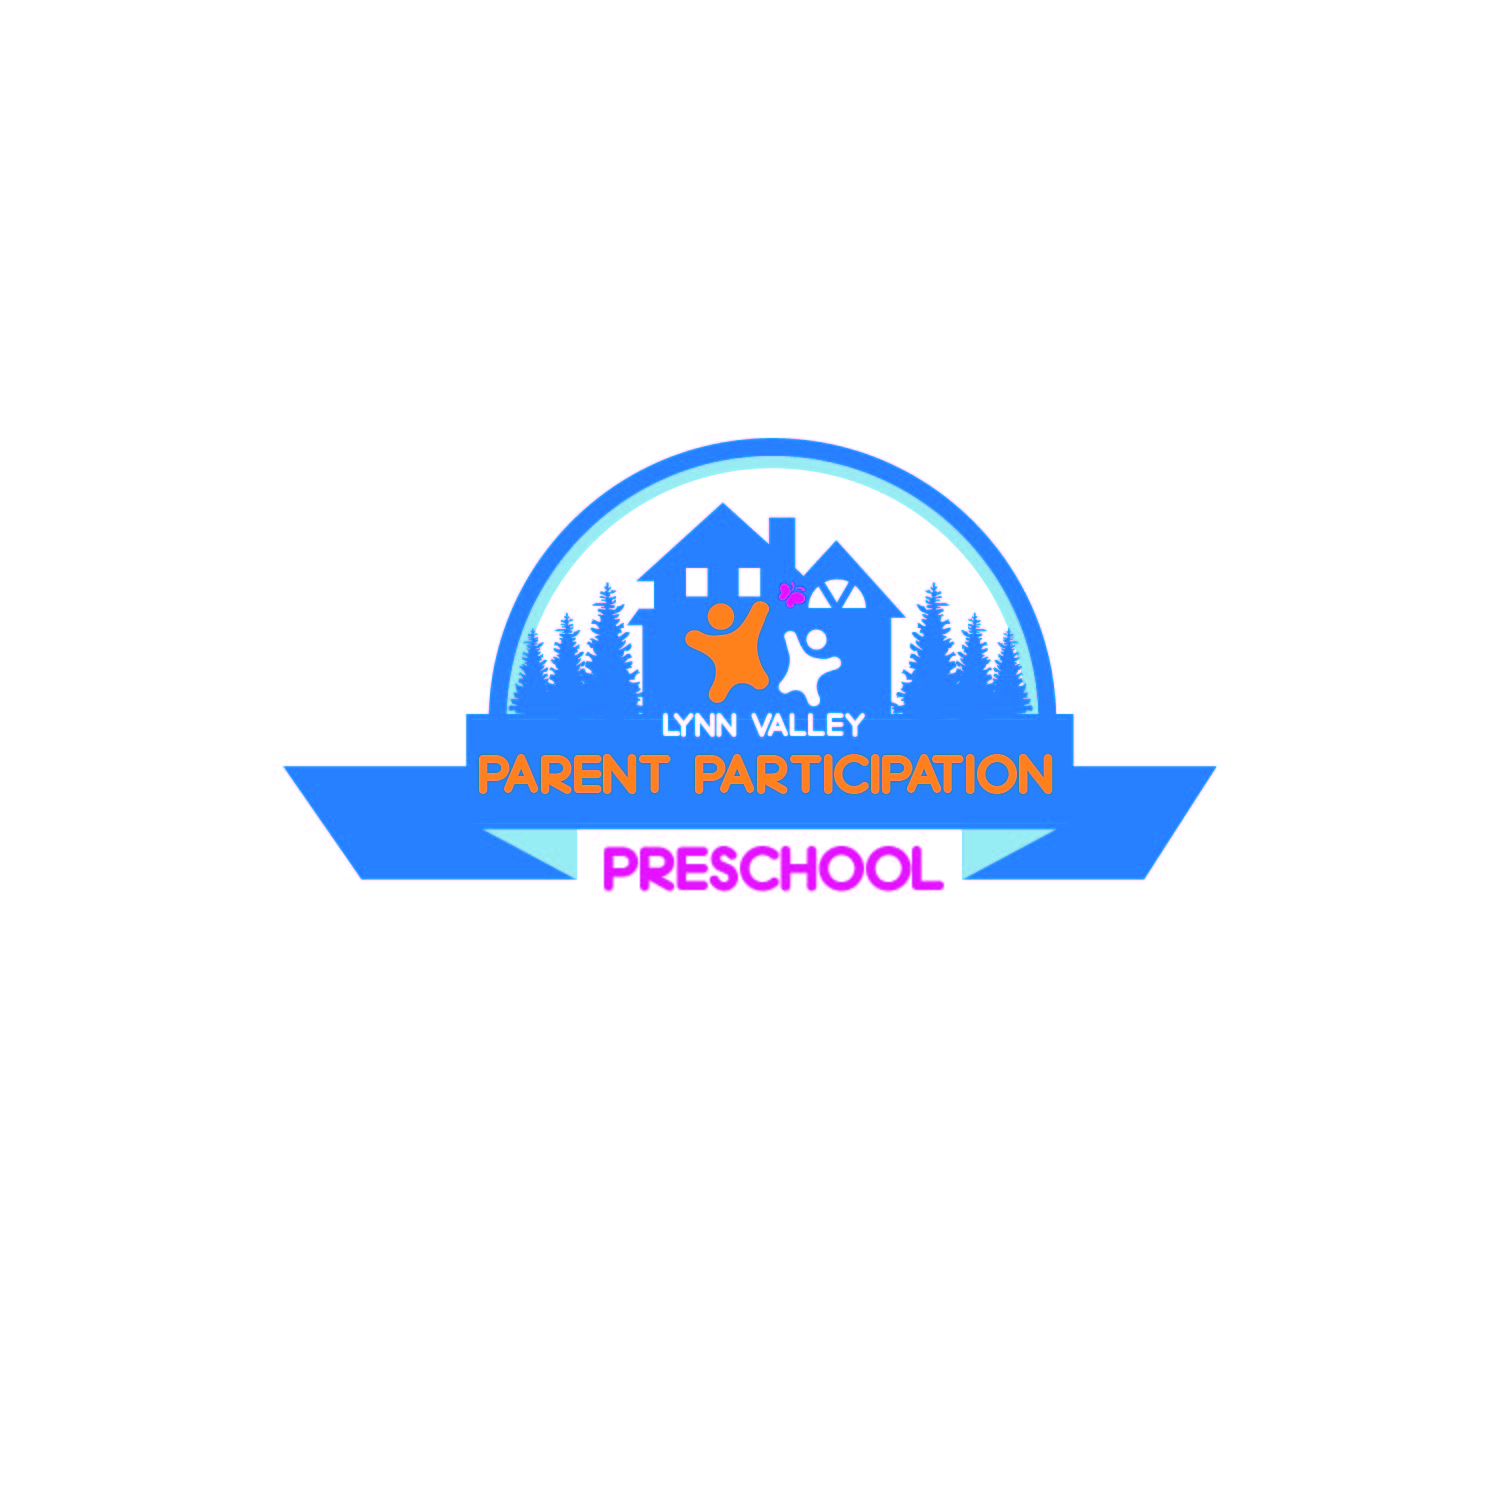 Logo Design by lagalag - Entry No. 25 in the Logo Design Contest New Logo Design for Lynn Valley Parent Participation Preschool.